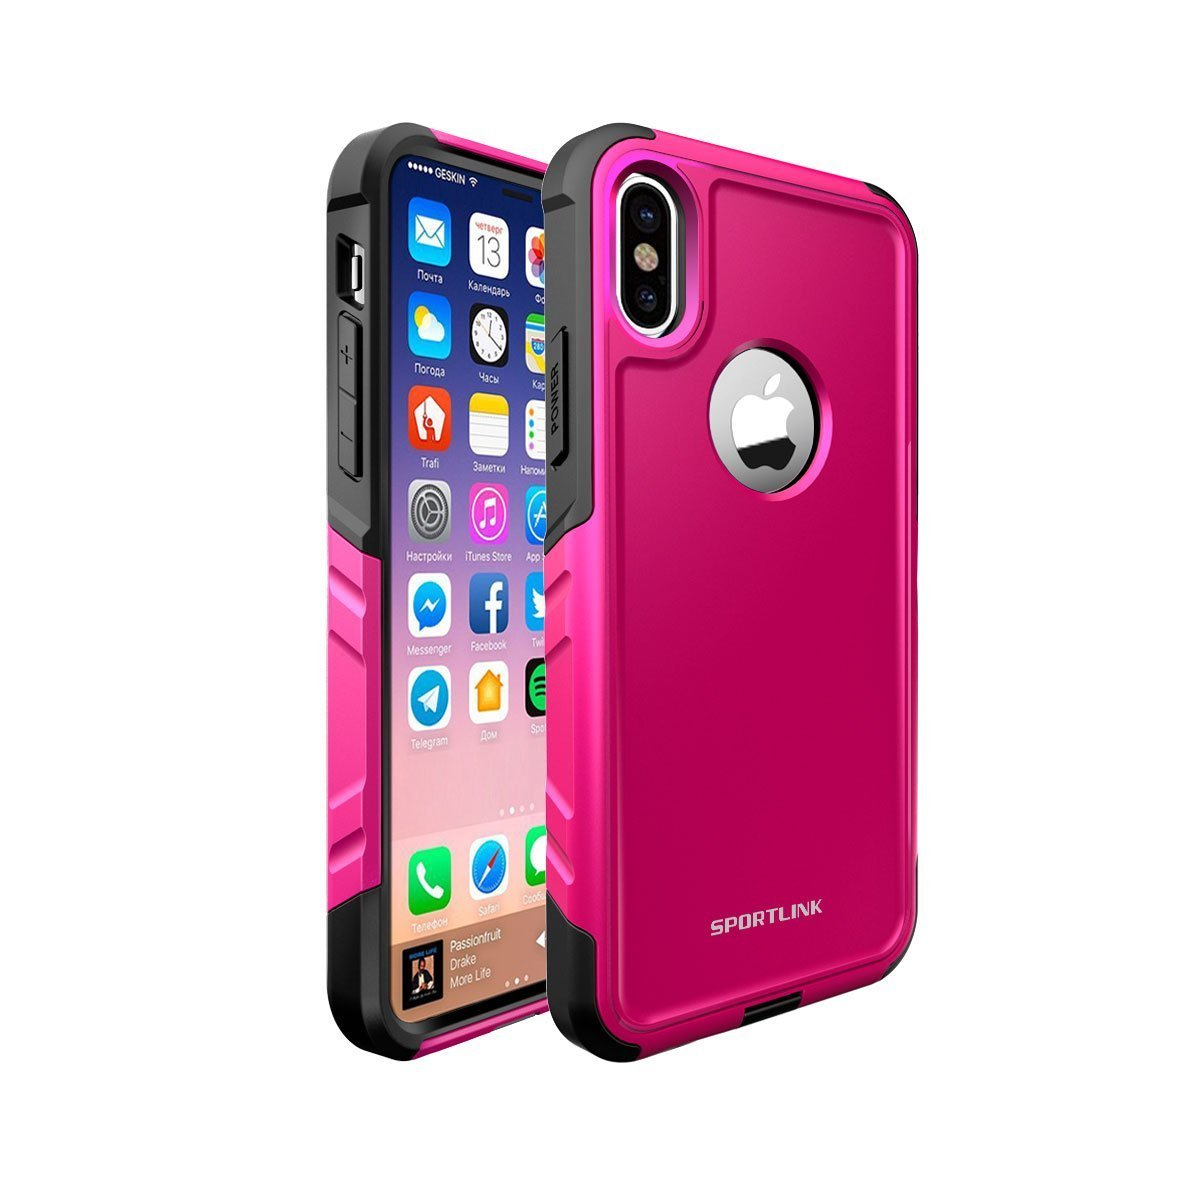 iPhone X Case , Sportlink iPhone 10 Case Dual Layer Hybrid Flexible TPU and Hard PC Double Protection Slip-Proof Drop-proof Anti-scratch Cover for Apple iPhone X 2017 (Pink)